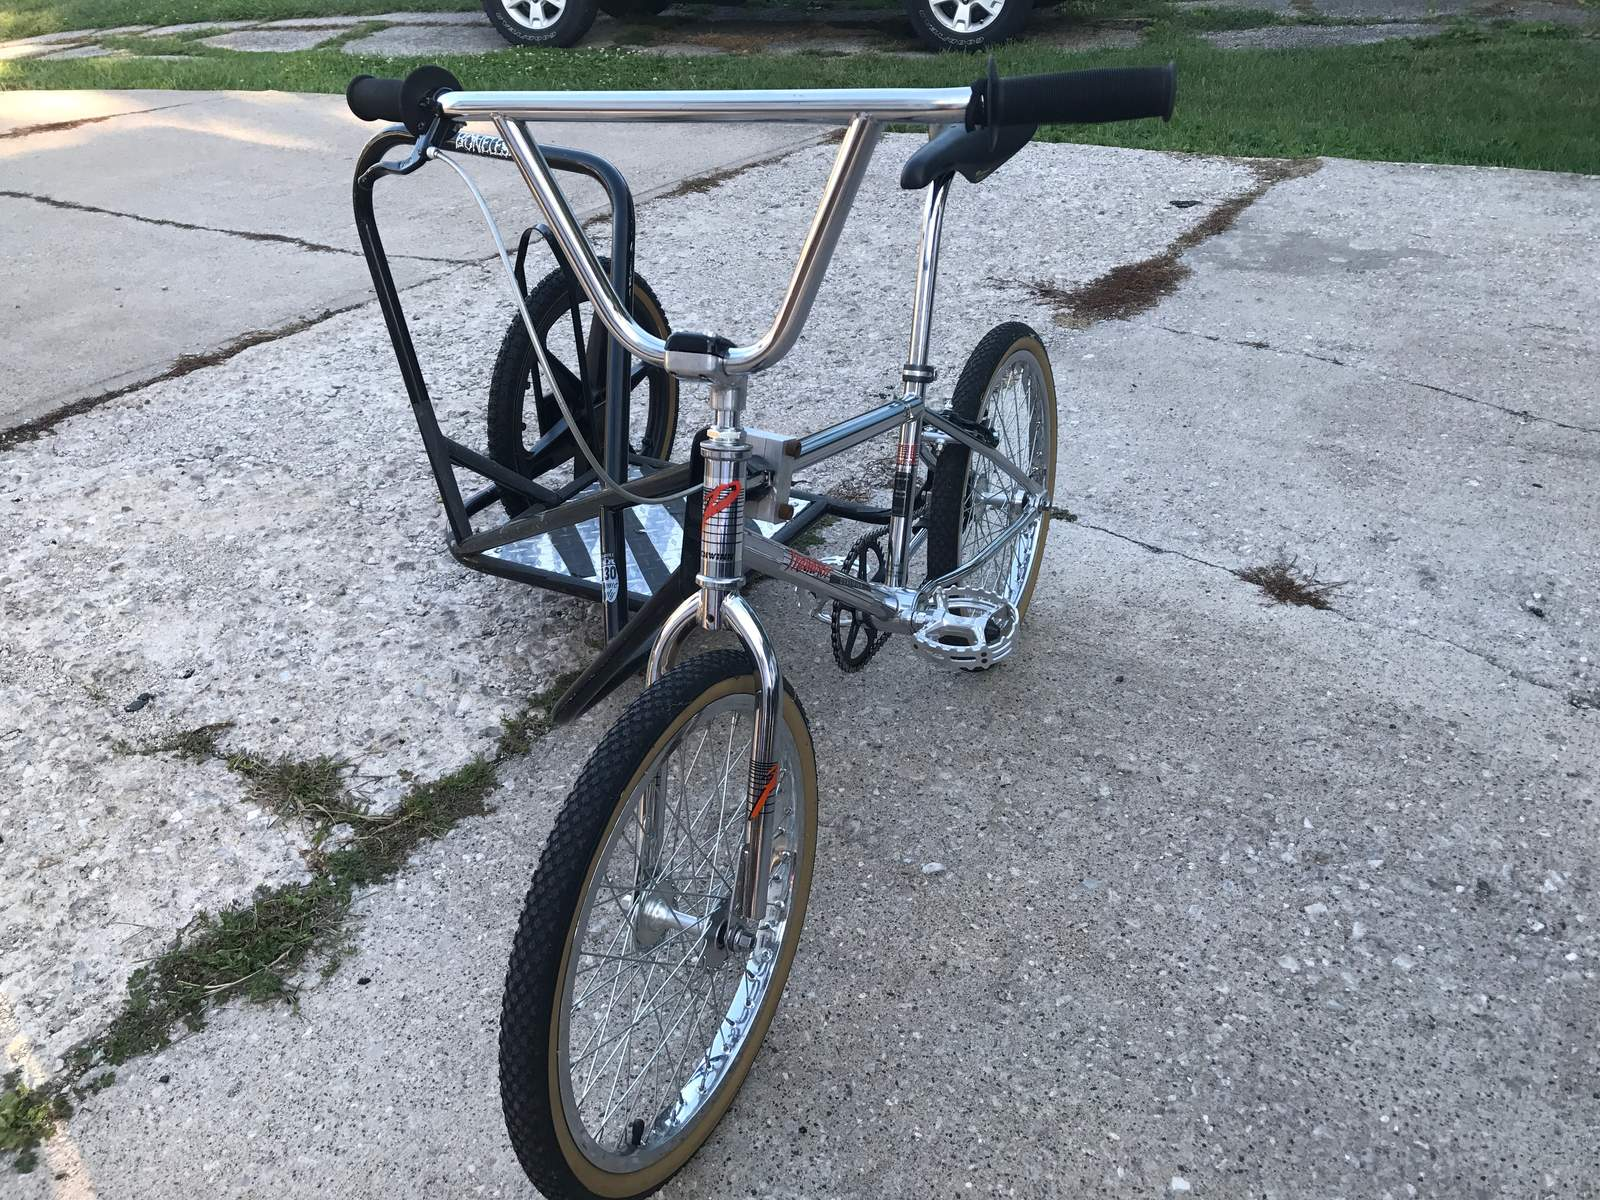 http://uploads.bmxmuseum.com/user-images/95057/684595b8-2461-4d08-b9e1-1278576be70e59a60b8e03.jpg